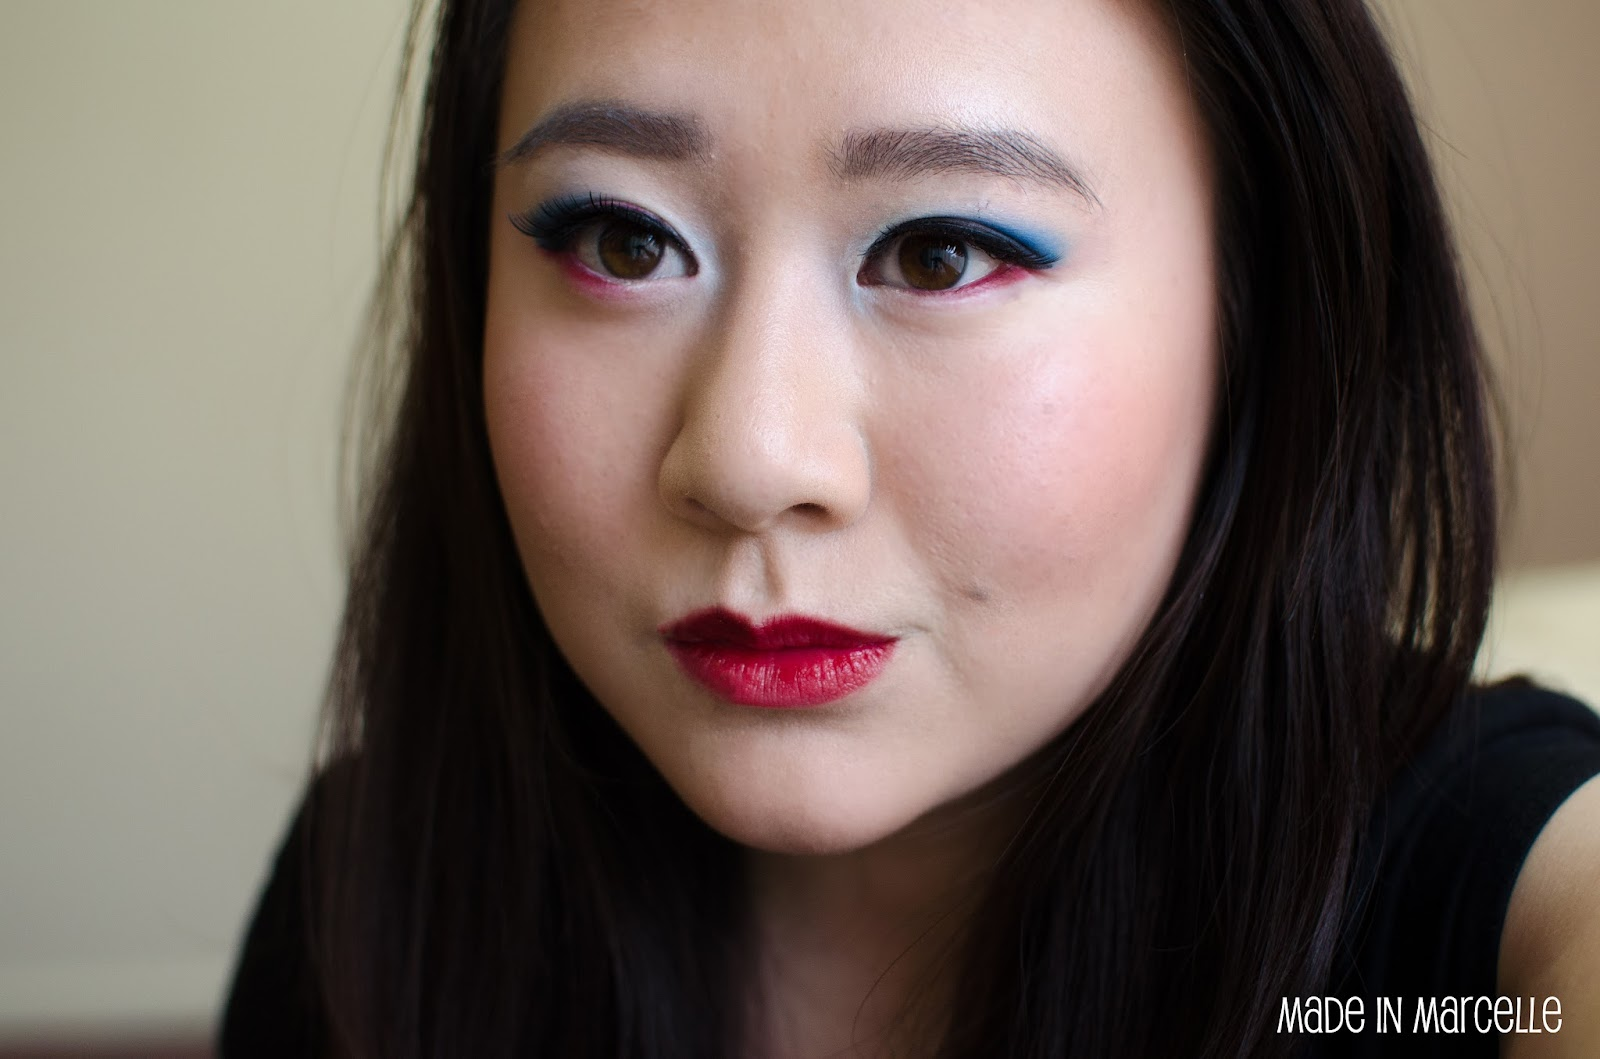 [CREATION] By M Captain America Inspired Simple Make-up | Made In Marcelle